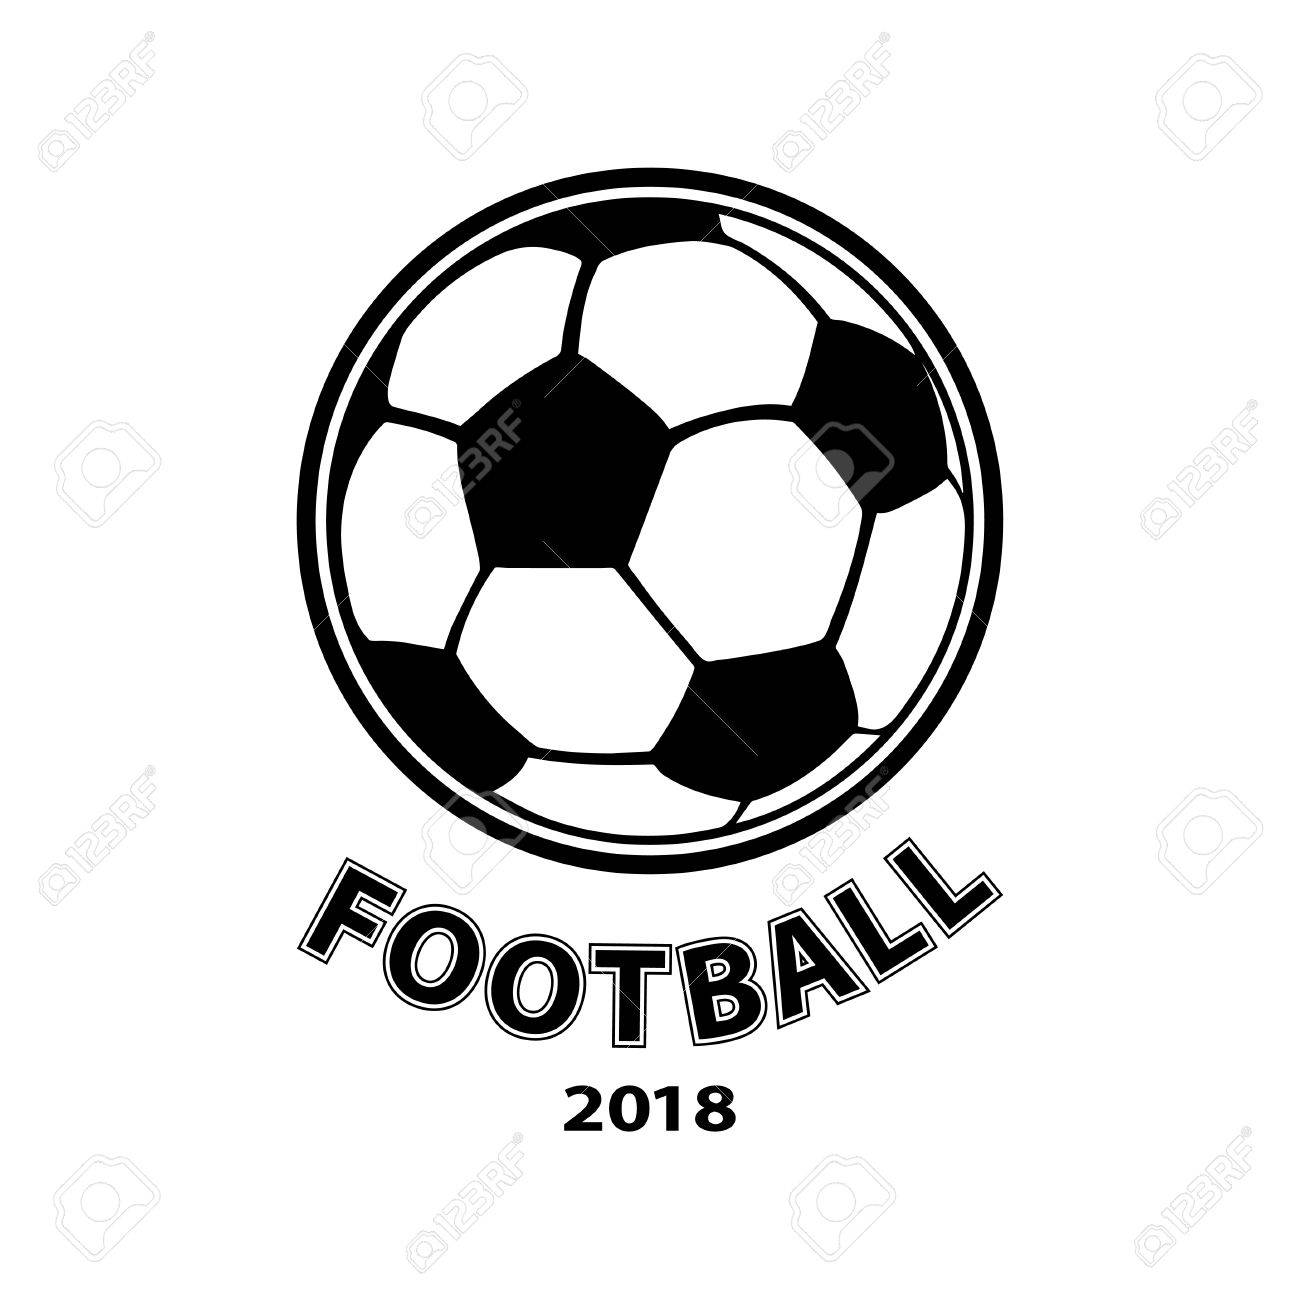 football logo ball icon isolated on white background vector Football Mascots football logo ball icon isolated on white background vector stock vector 82586342